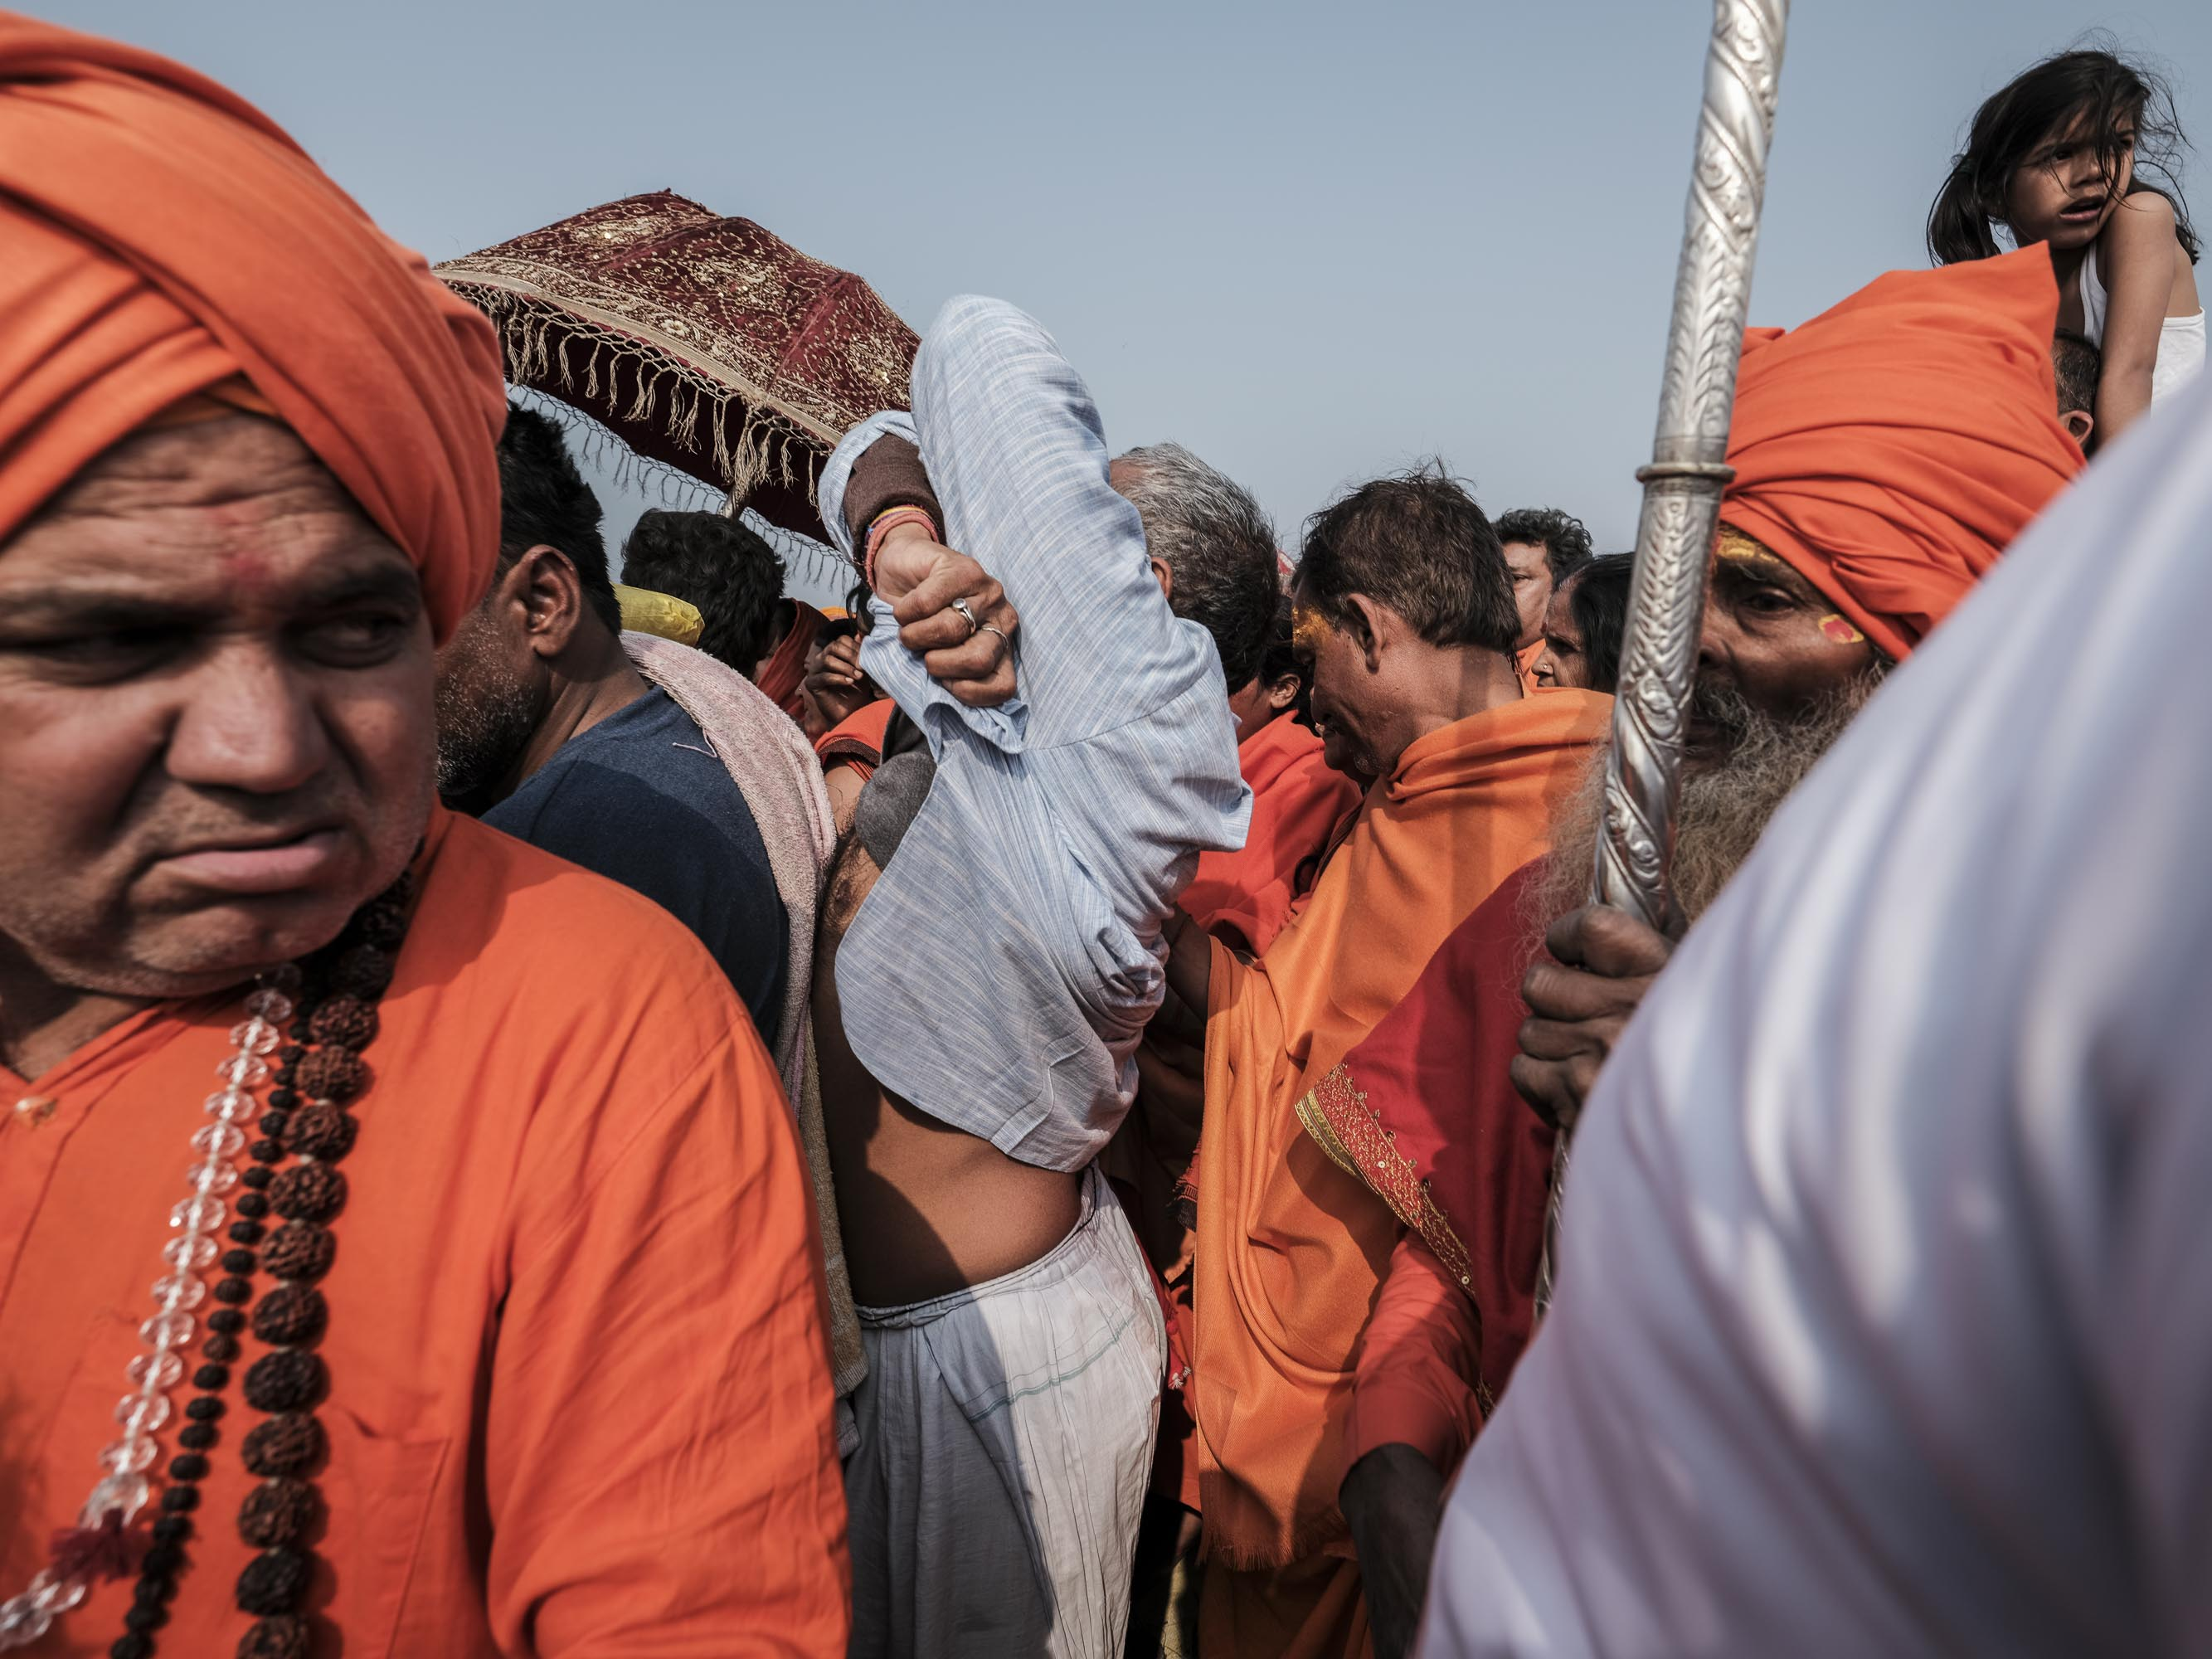 orange crowd 4 February pilgrims Kumbh mela 2019 India Allahabad Prayagraj Ardh hindu religious Festival event rivers photographer jose jeuland photography